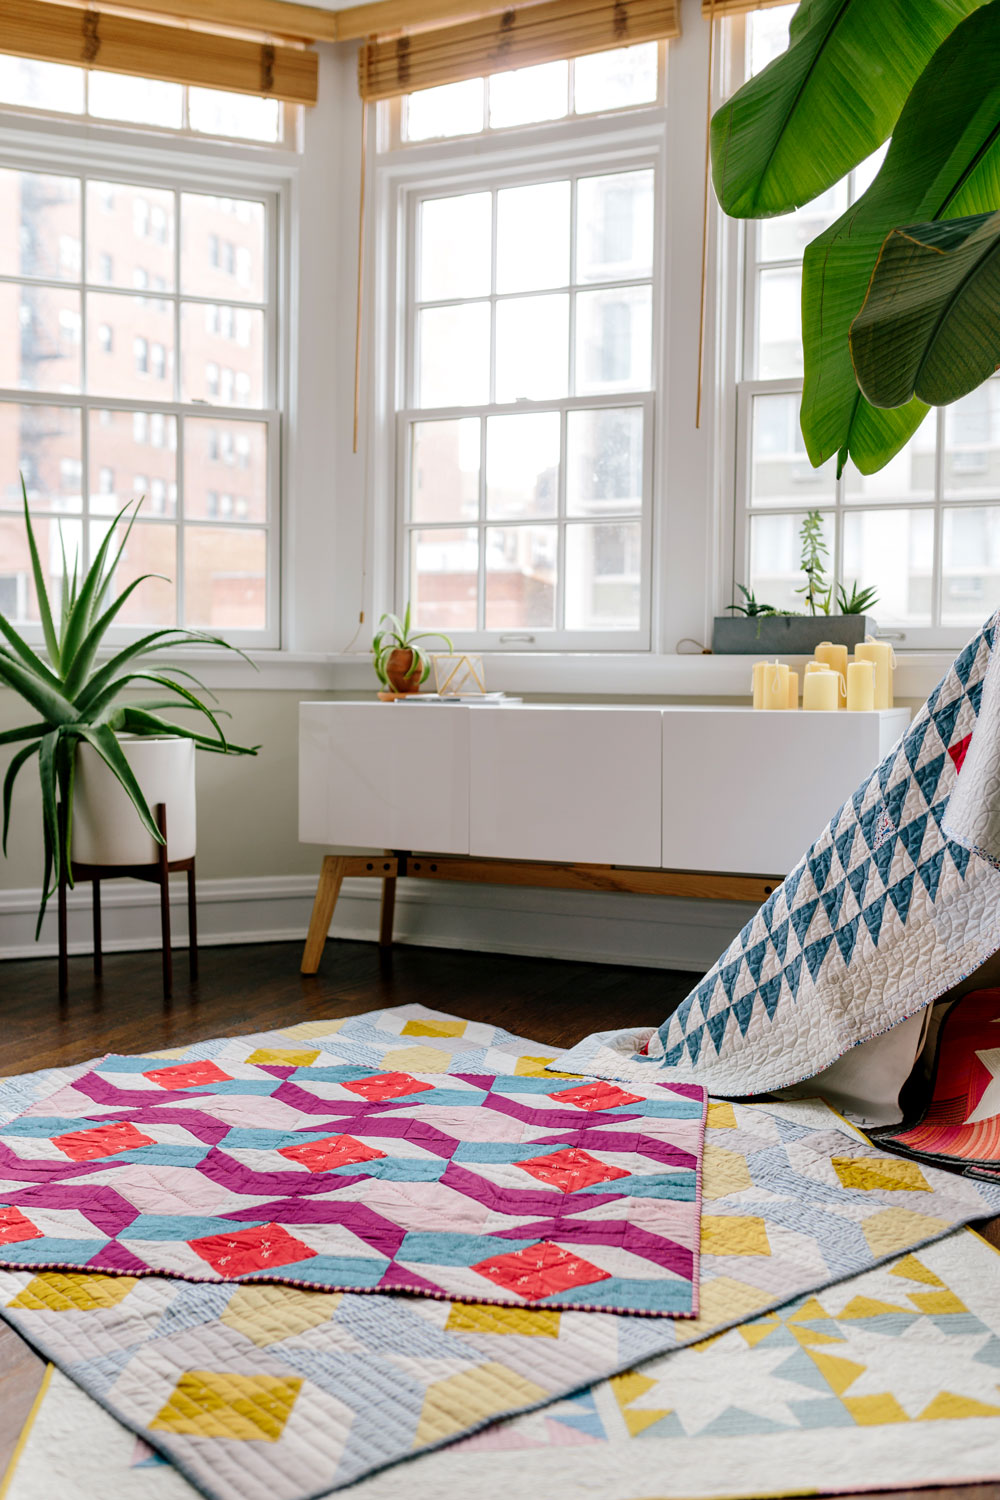 Suzy-Quilts-Interior-Design